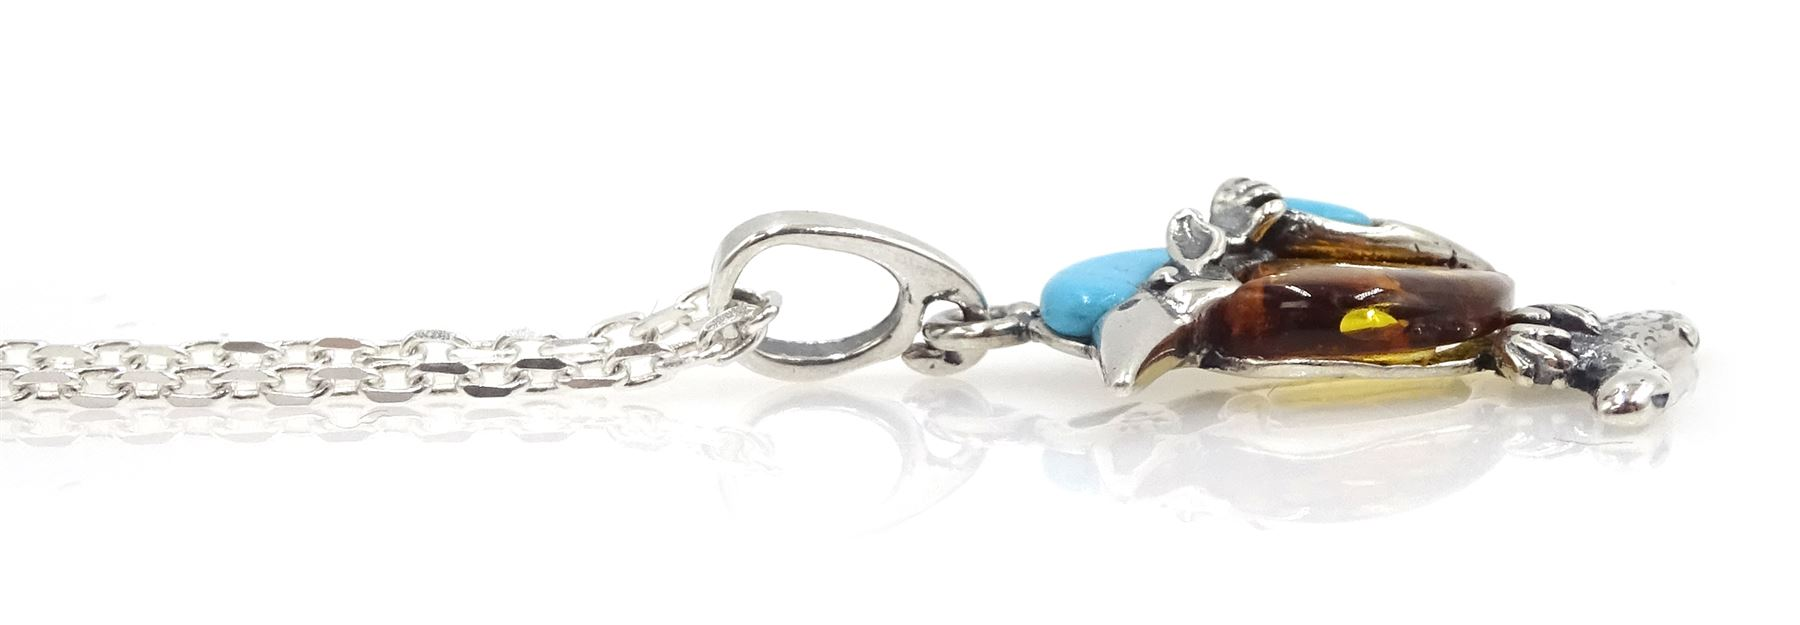 Silver turquoise and amber kingfisher pendant necklace - Image 2 of 2